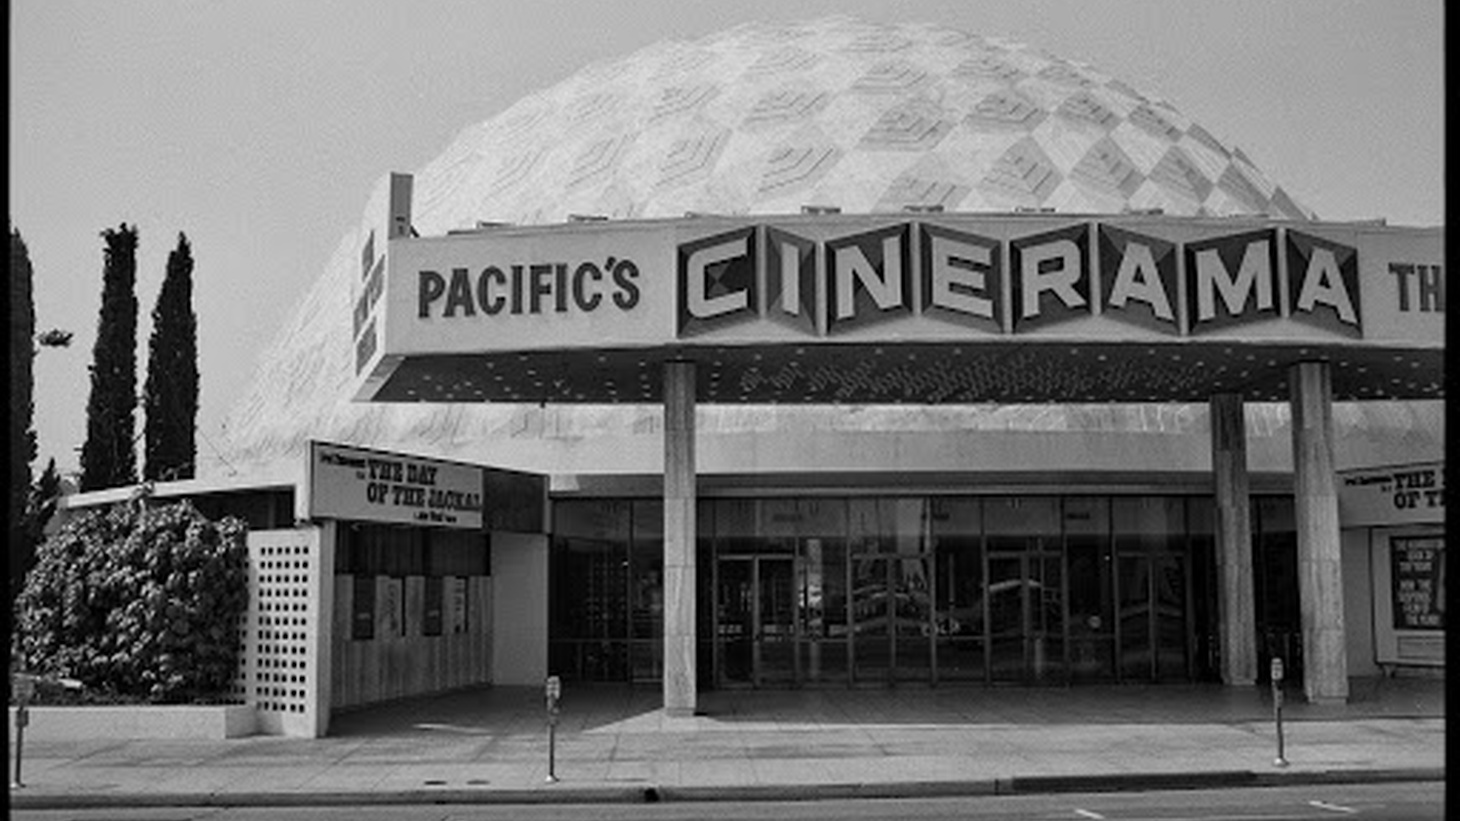 Cineramadome on Sunset Boulevard photographed by Ed Ruscha in 1973. The artist photographed the same building in 1990, and again in 2007. Streets of Los Angeles Archive. The Getty Research Institute, 2012.M.1. © Ed Ruscha